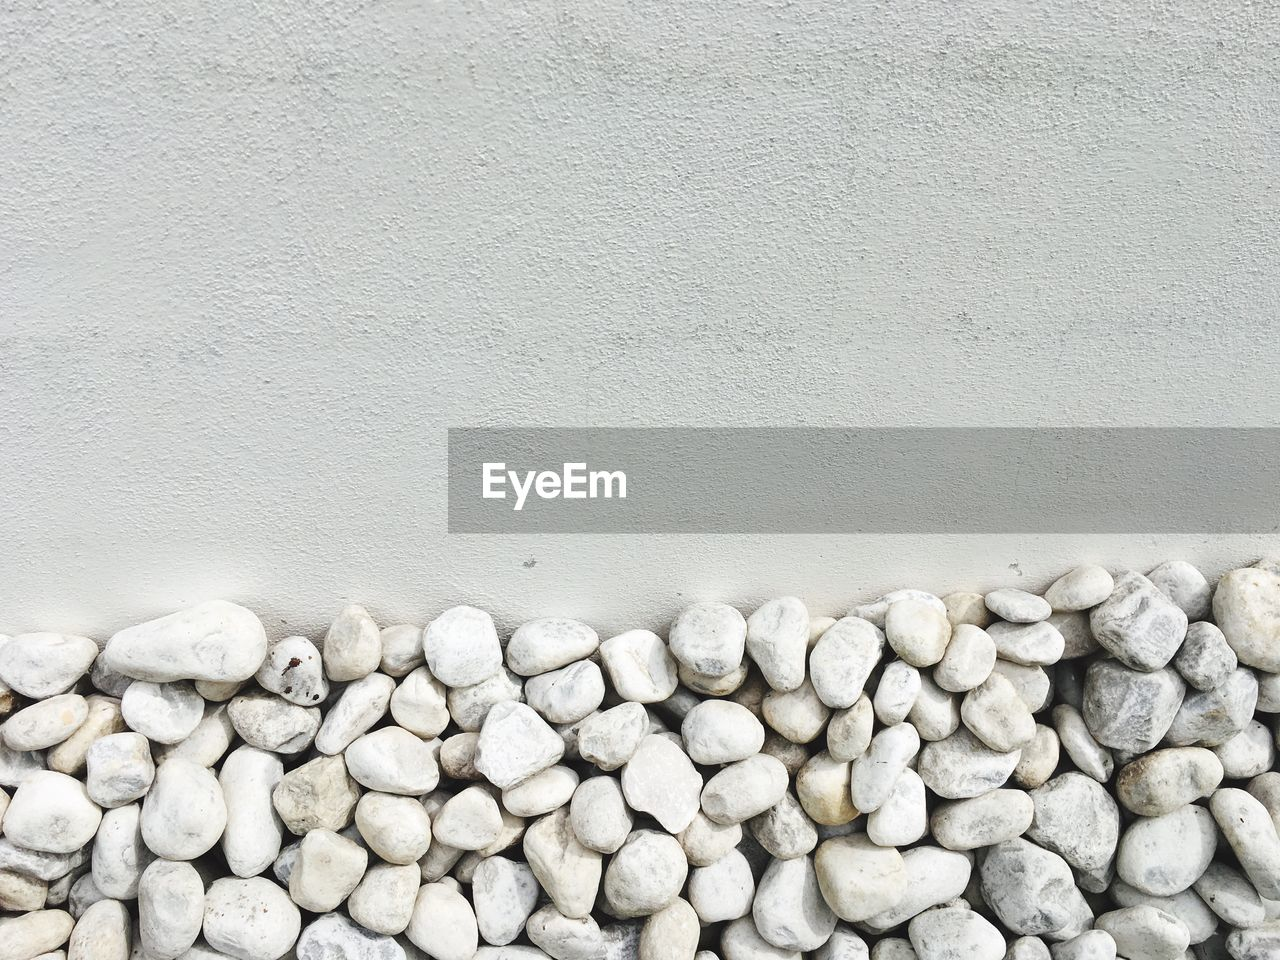 Pebbles Against White Concrete Wall